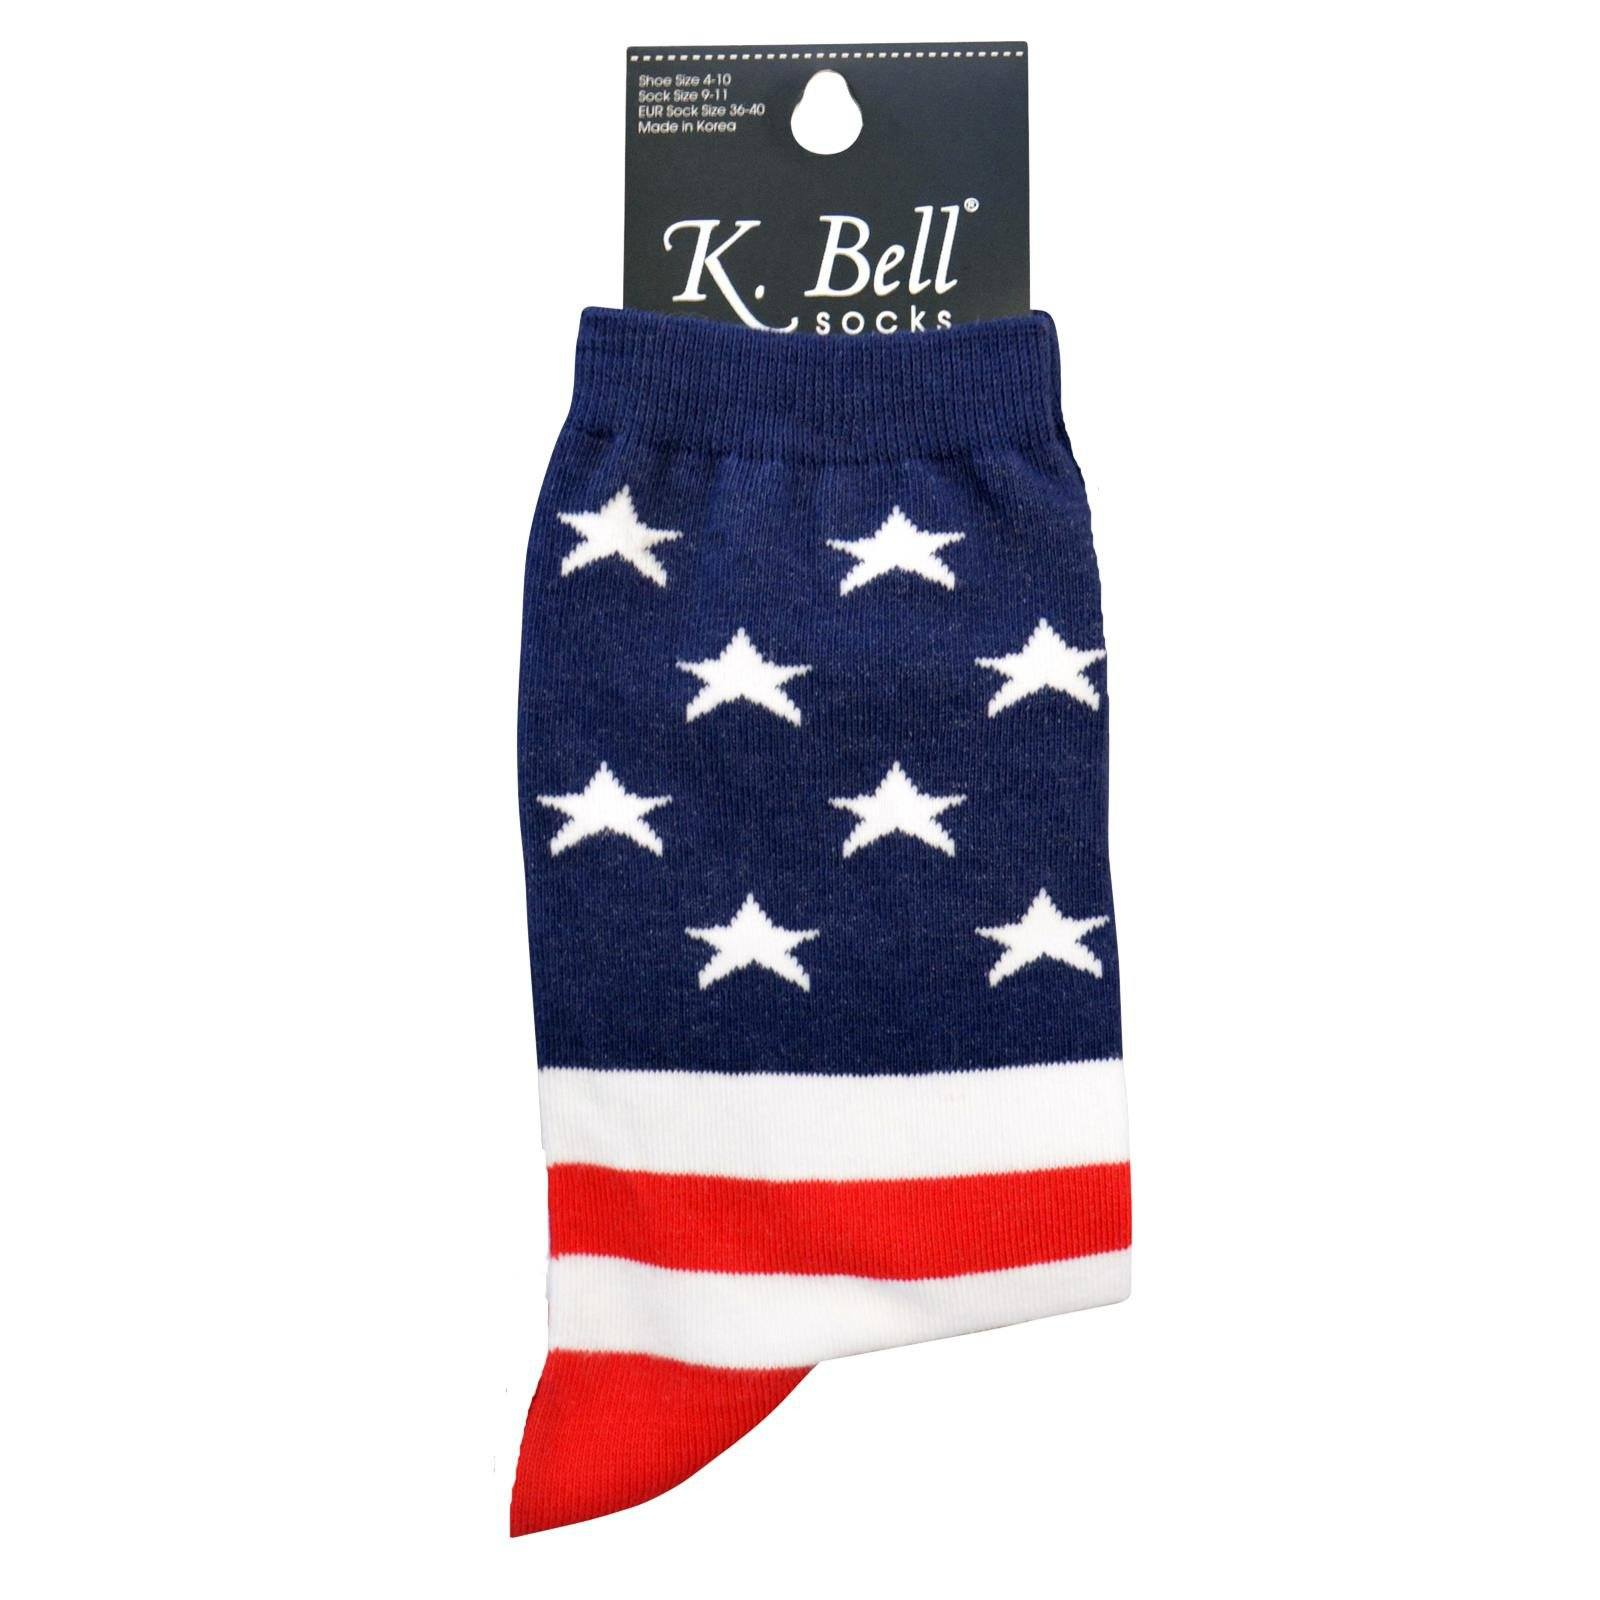 Womens American Flag Patriotic Crew Socks 9-11 MADE IN THE USA